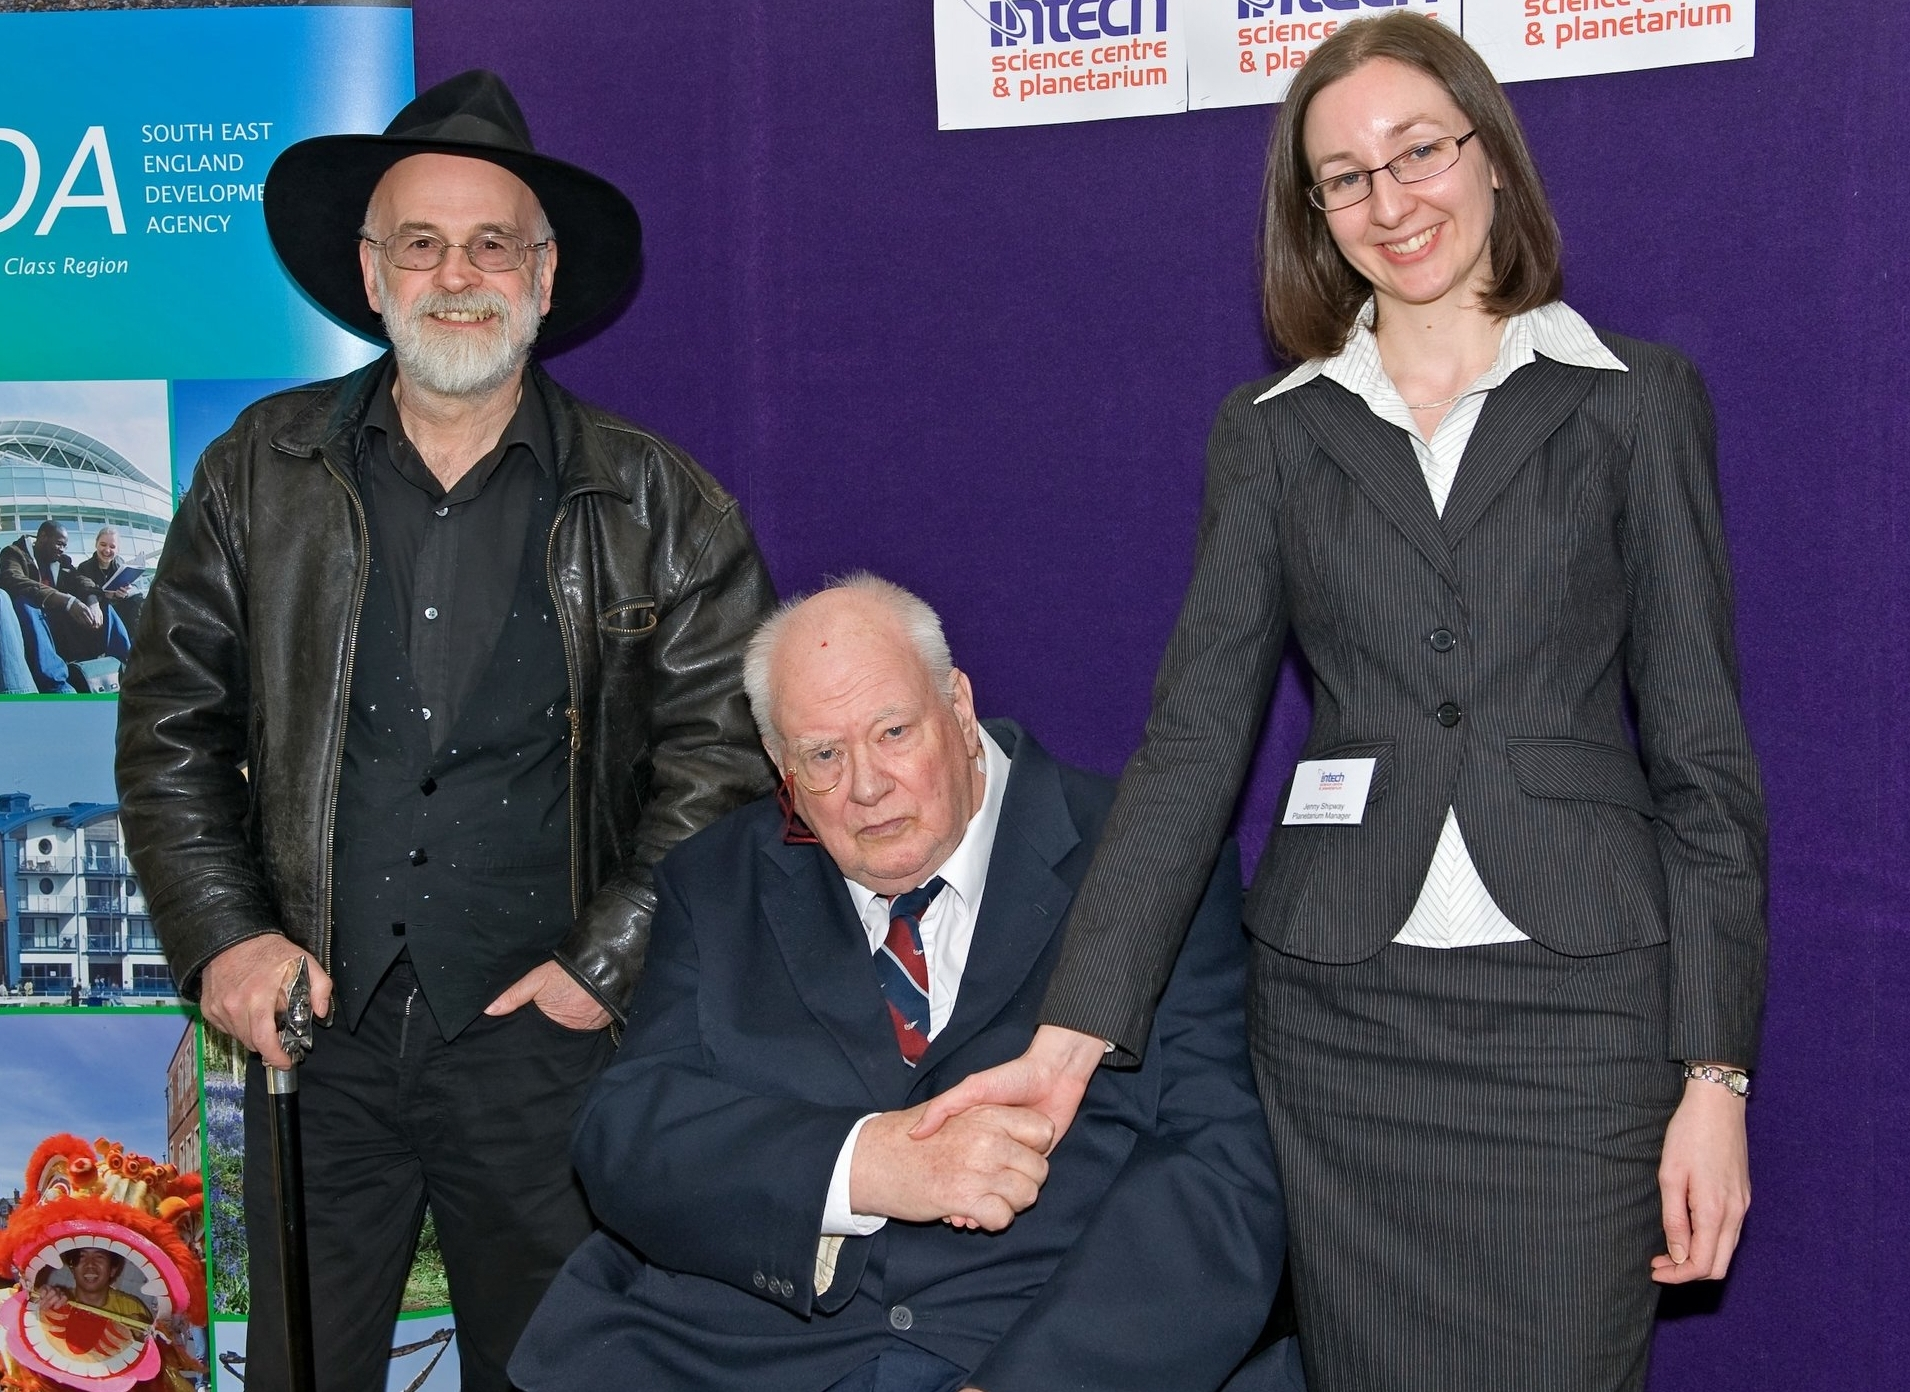 Winchester Planetarium launch event, 2008; with Terry Pratchett and Sir Patrick Moore.